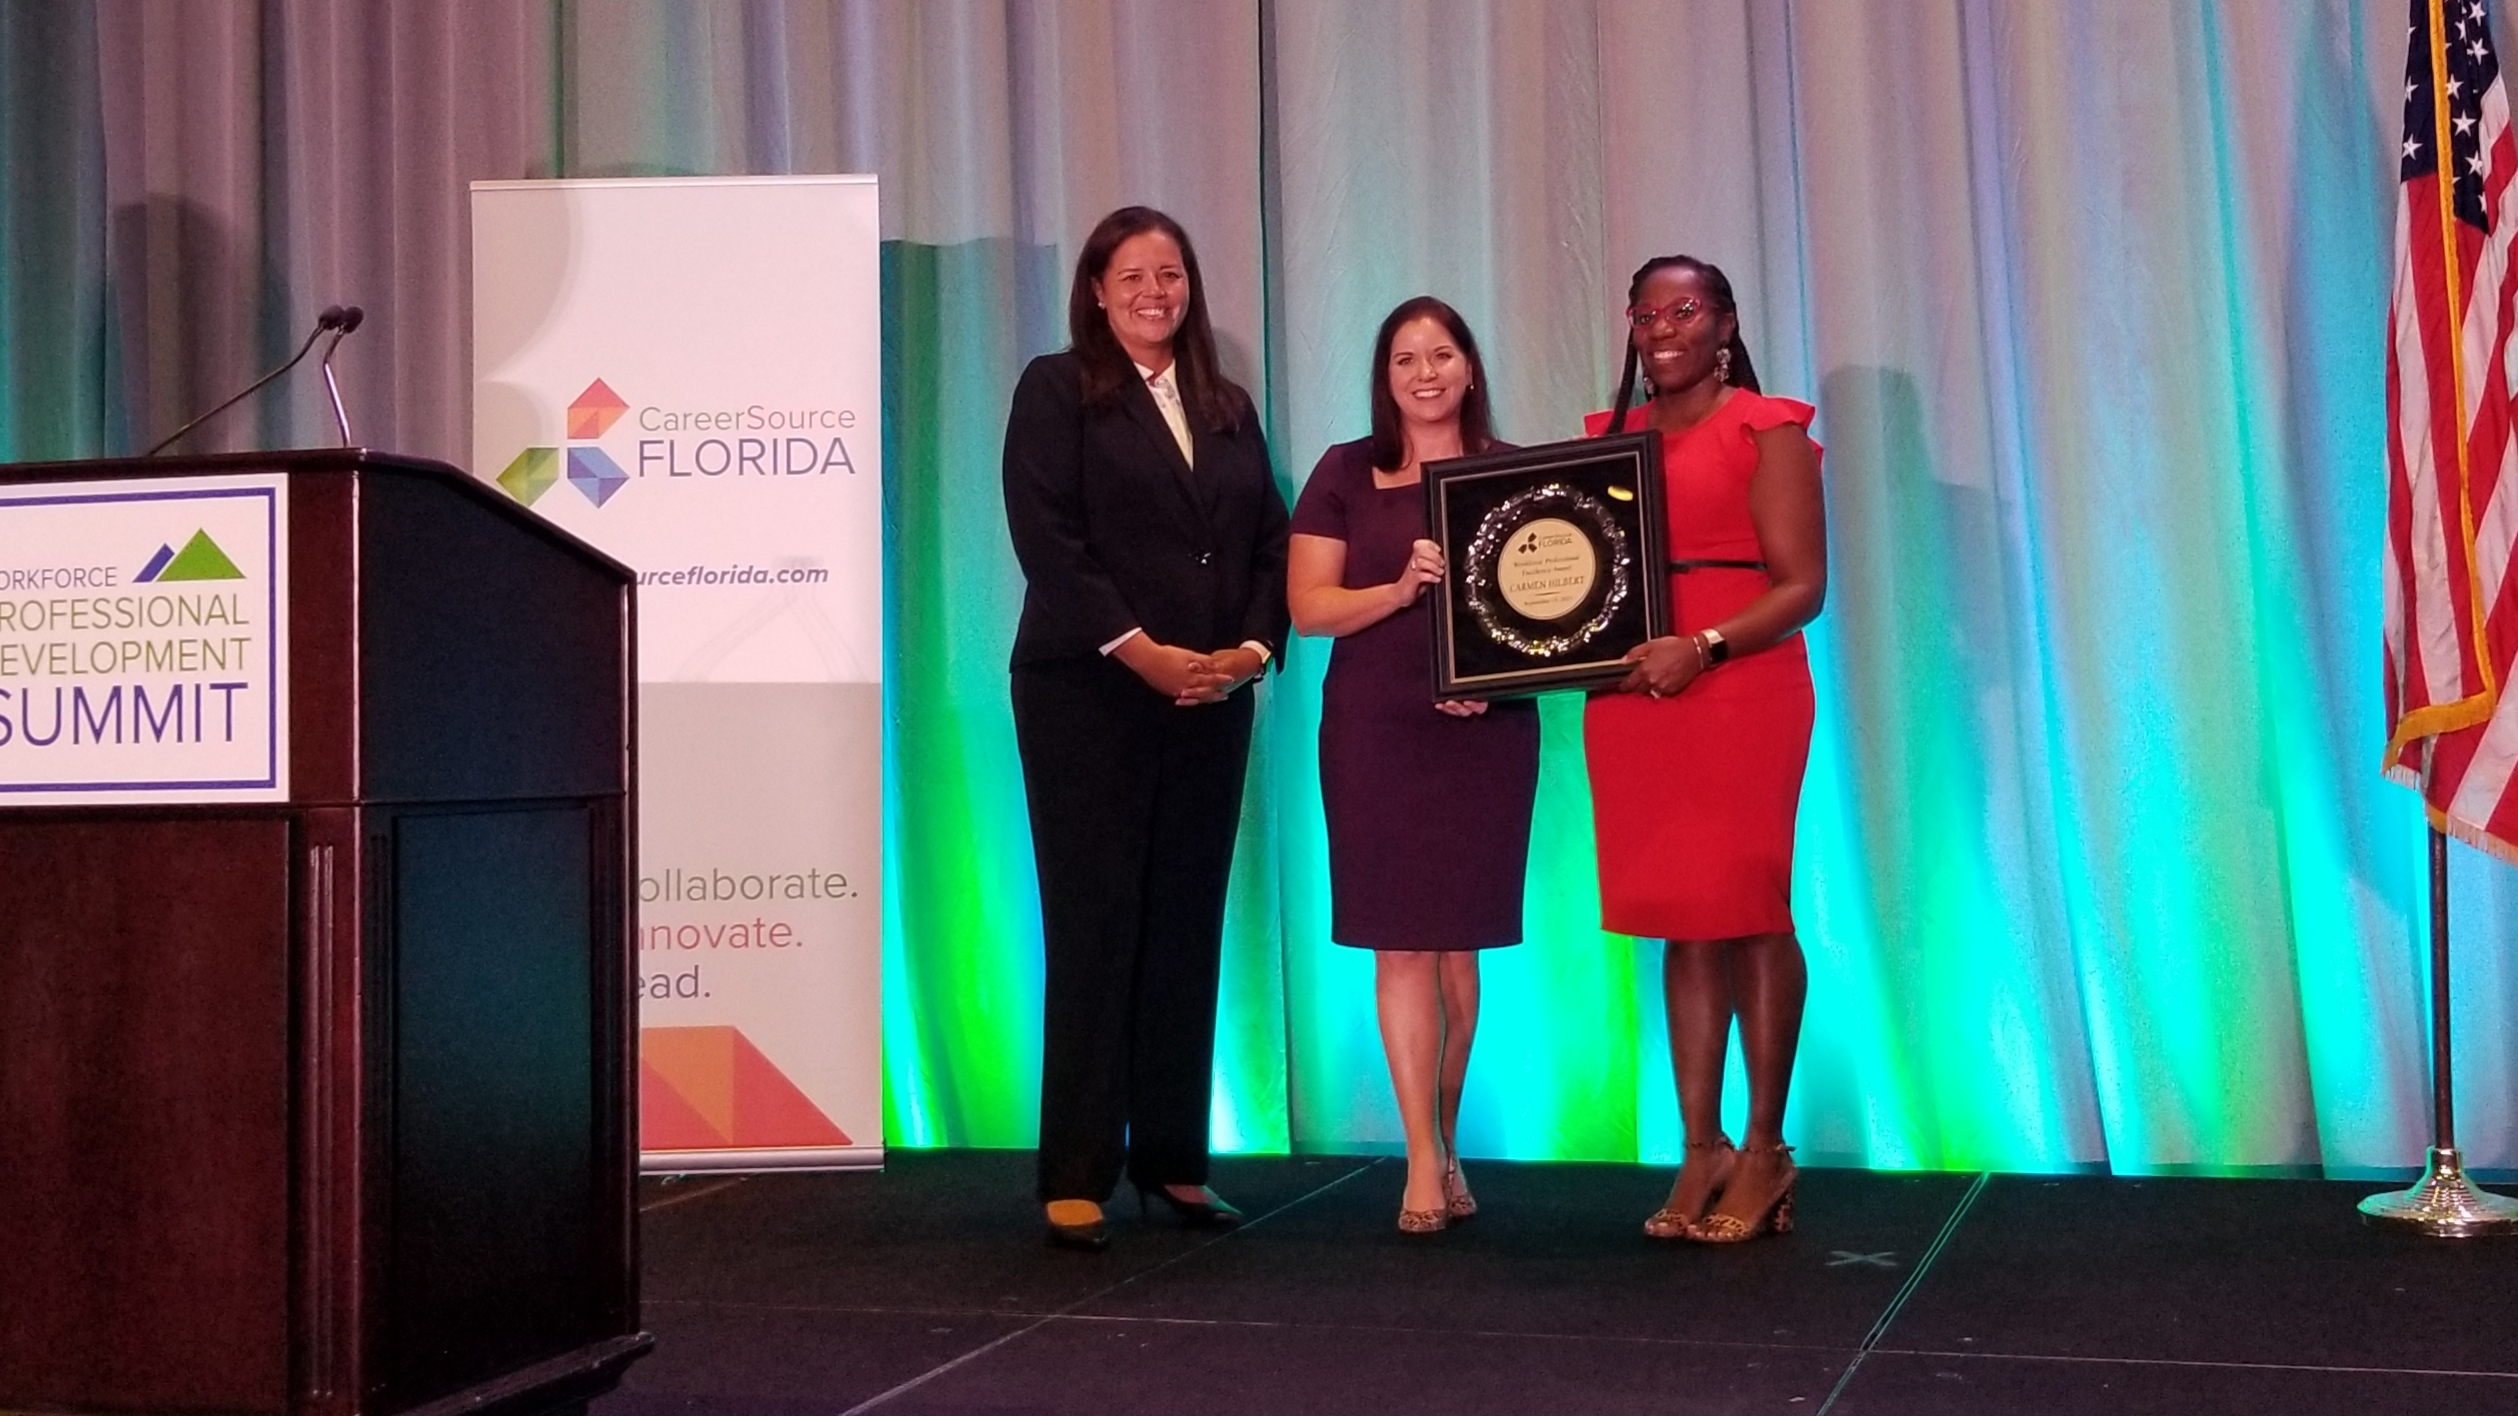 CareerSource Florida's Carmen Hilbert recognized with an award